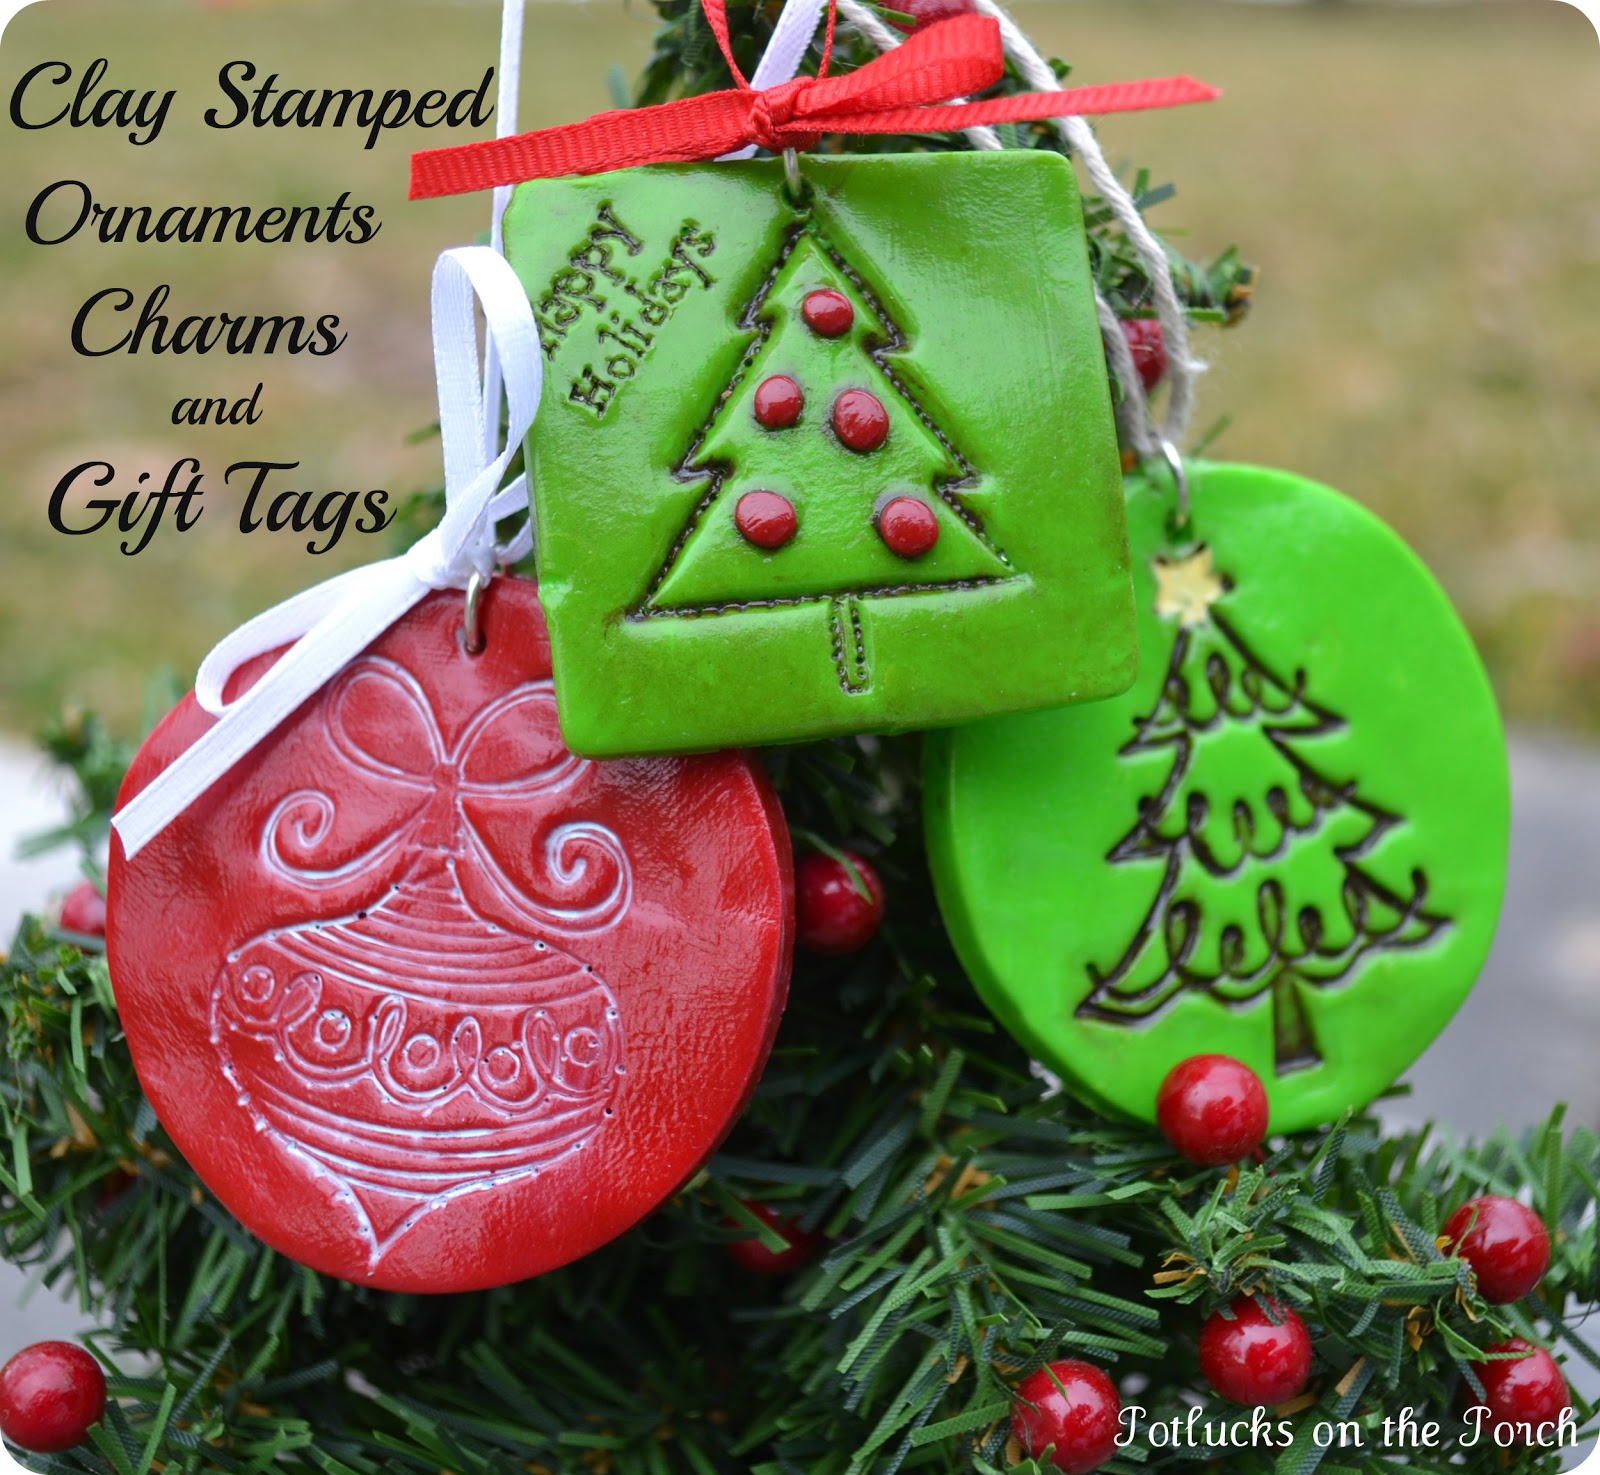 Potlucks On The Porch: Clay Stamped Christmas Ornaments